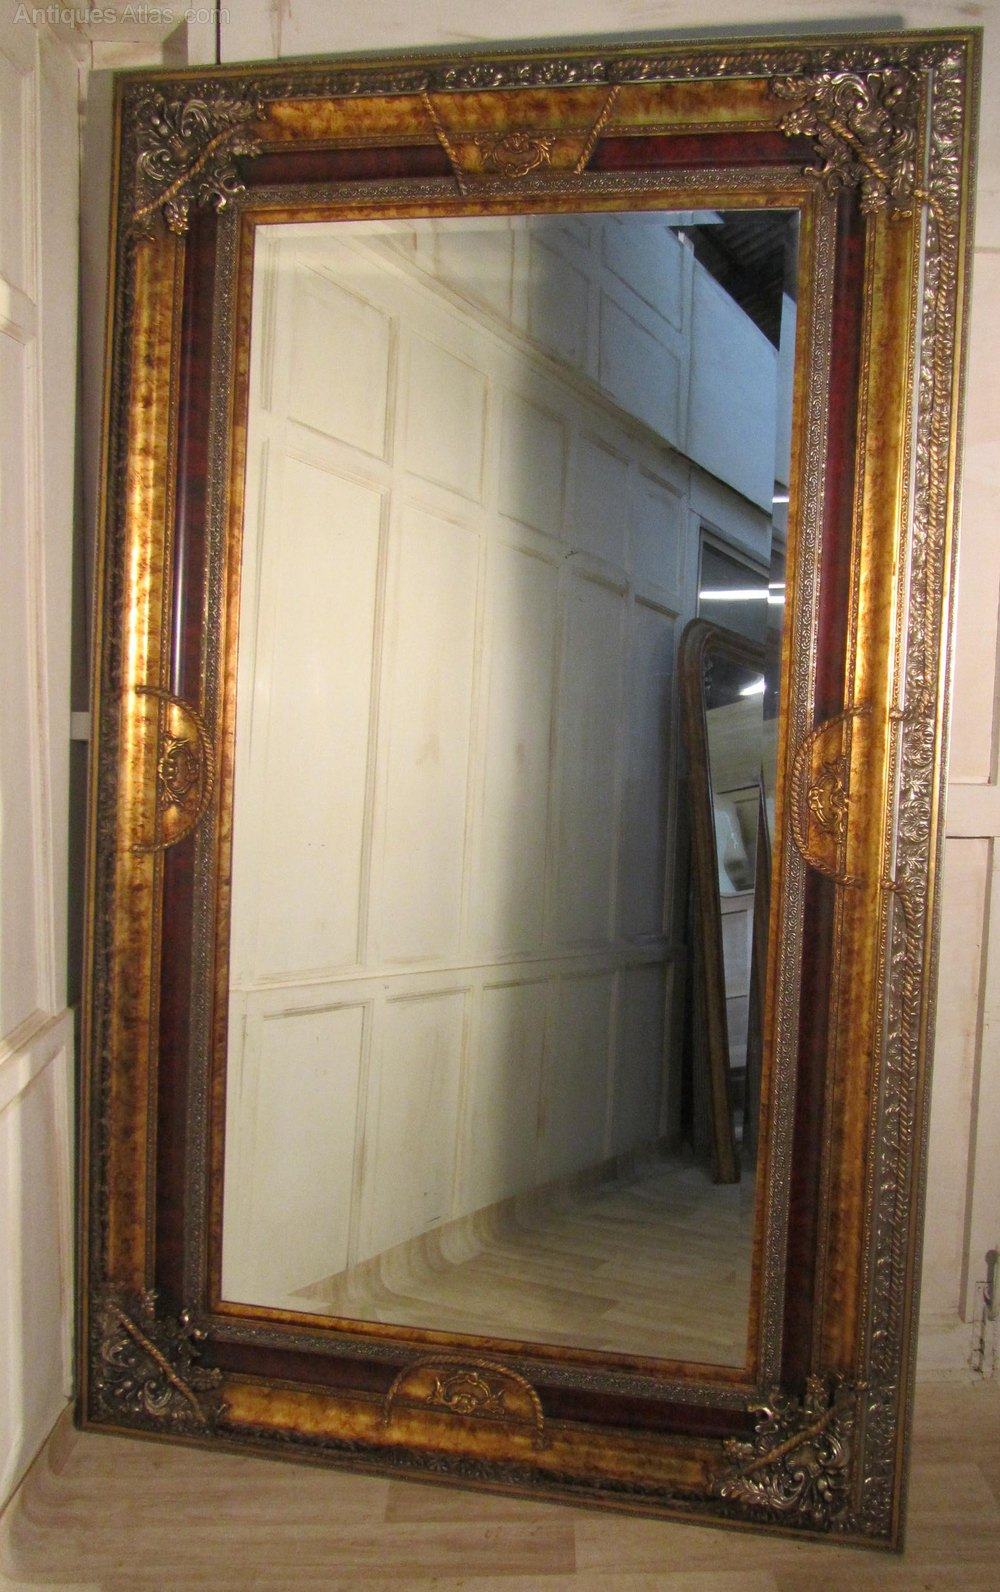 Antiques atlas a very large 8ft decorative wall mirror for Large framed mirrors for walls